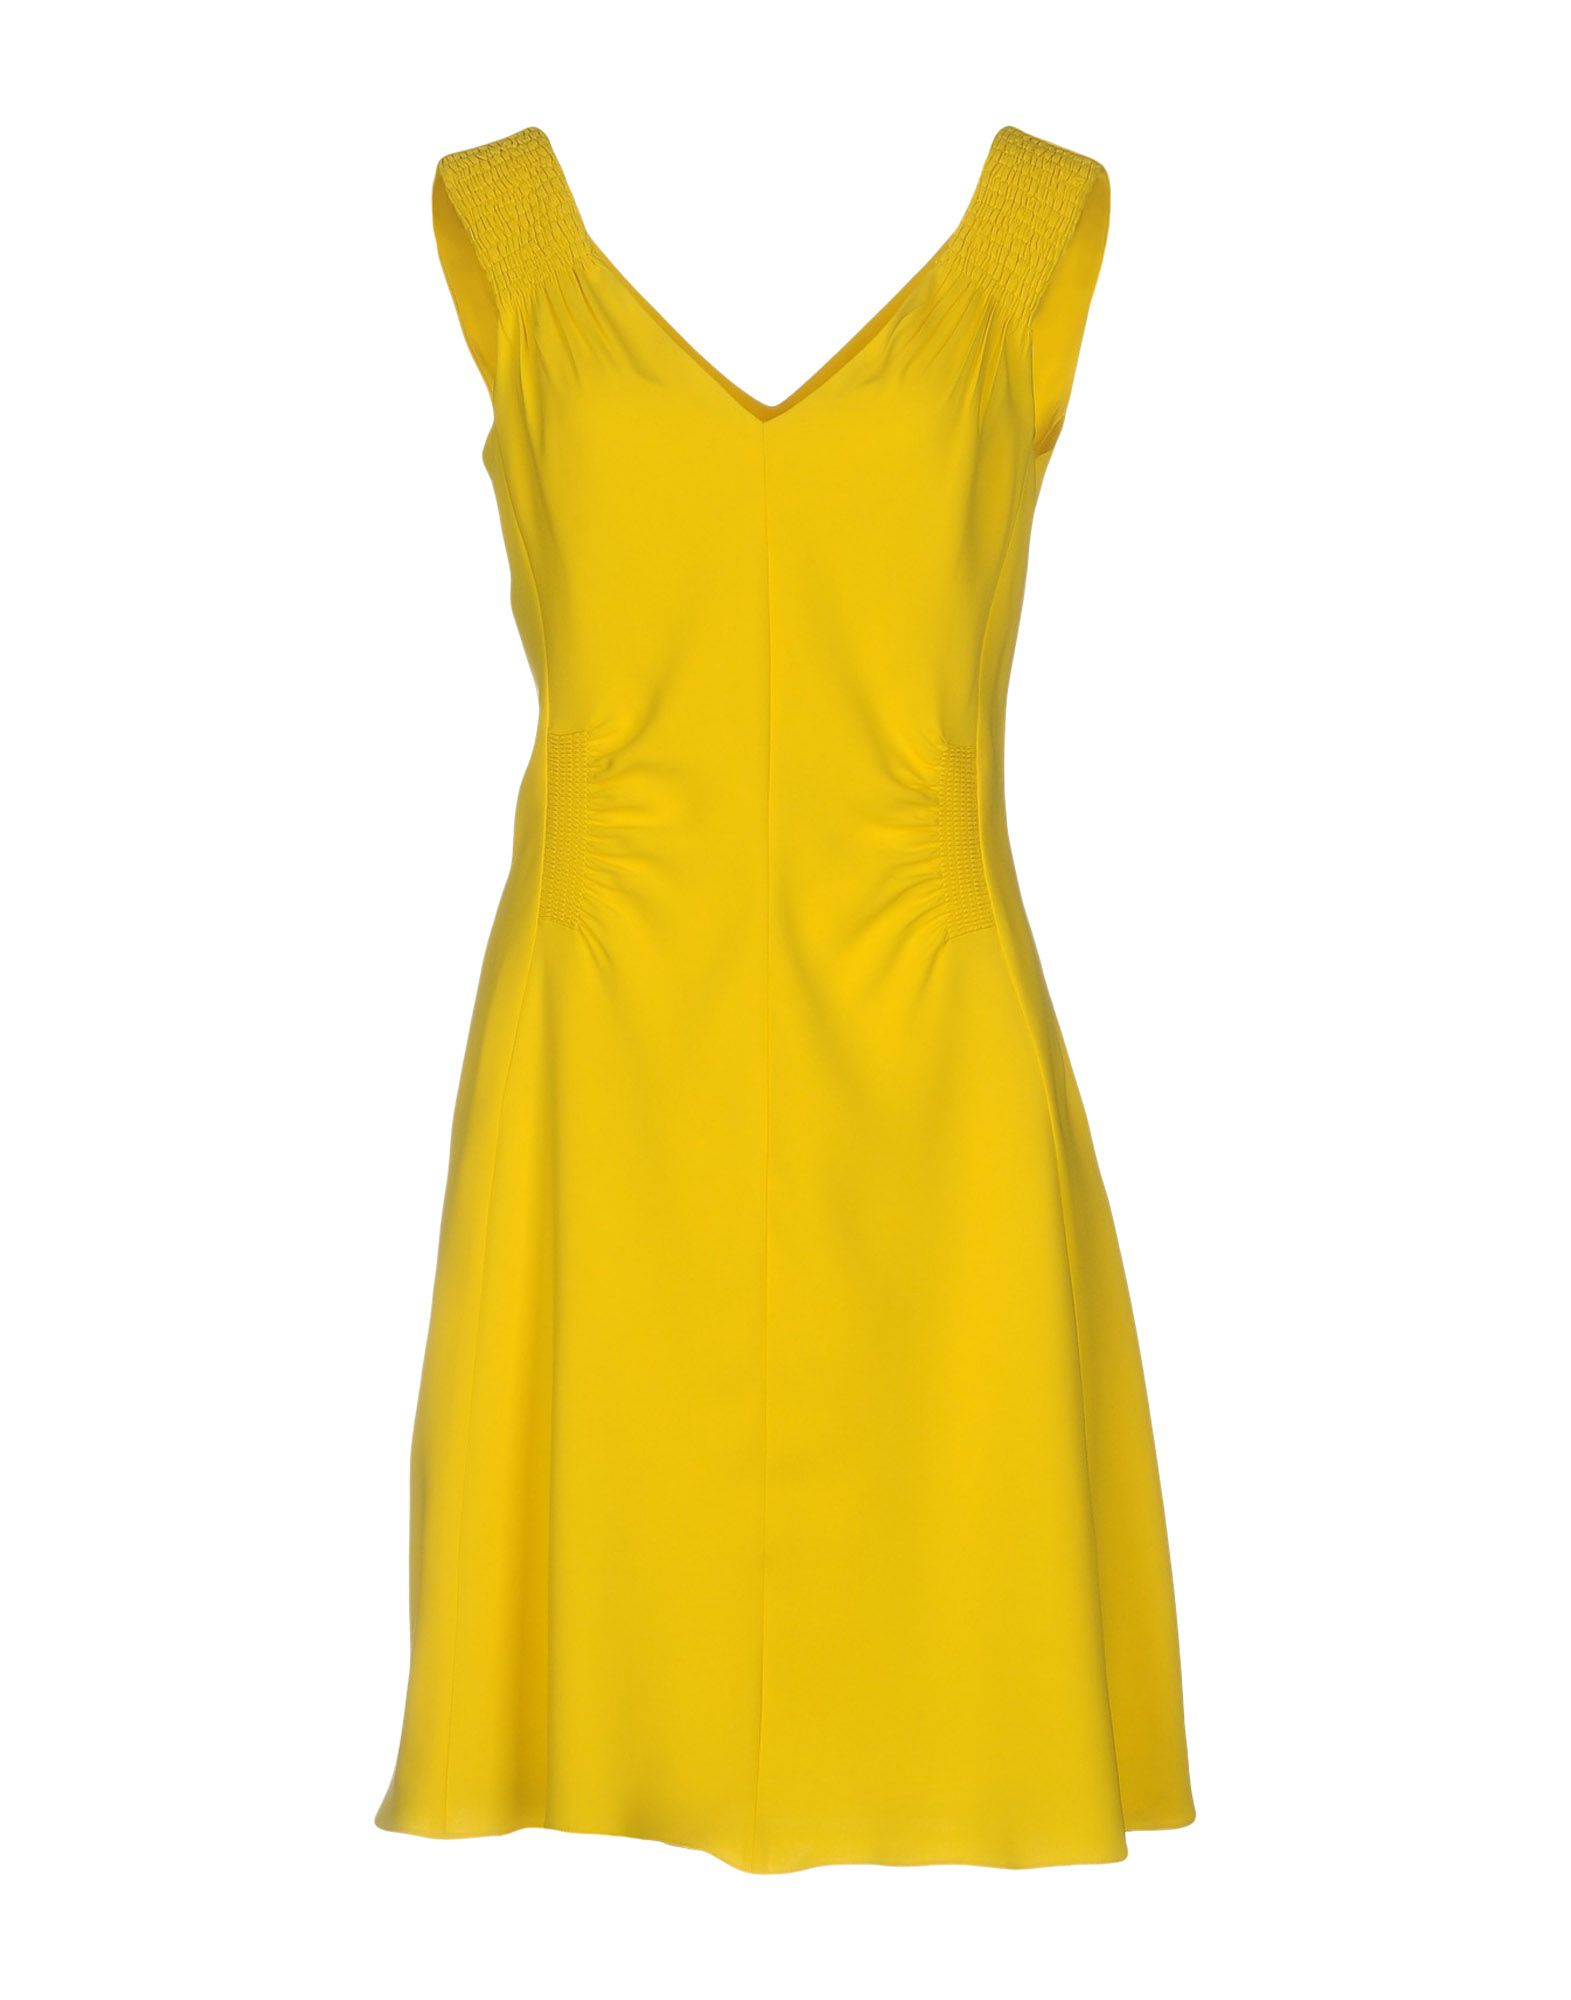 Dress for Women, Evening Cocktail Party On Sale, Yellow, Cotton, 2017, 10 6 8 P.A.R.O.S.H.